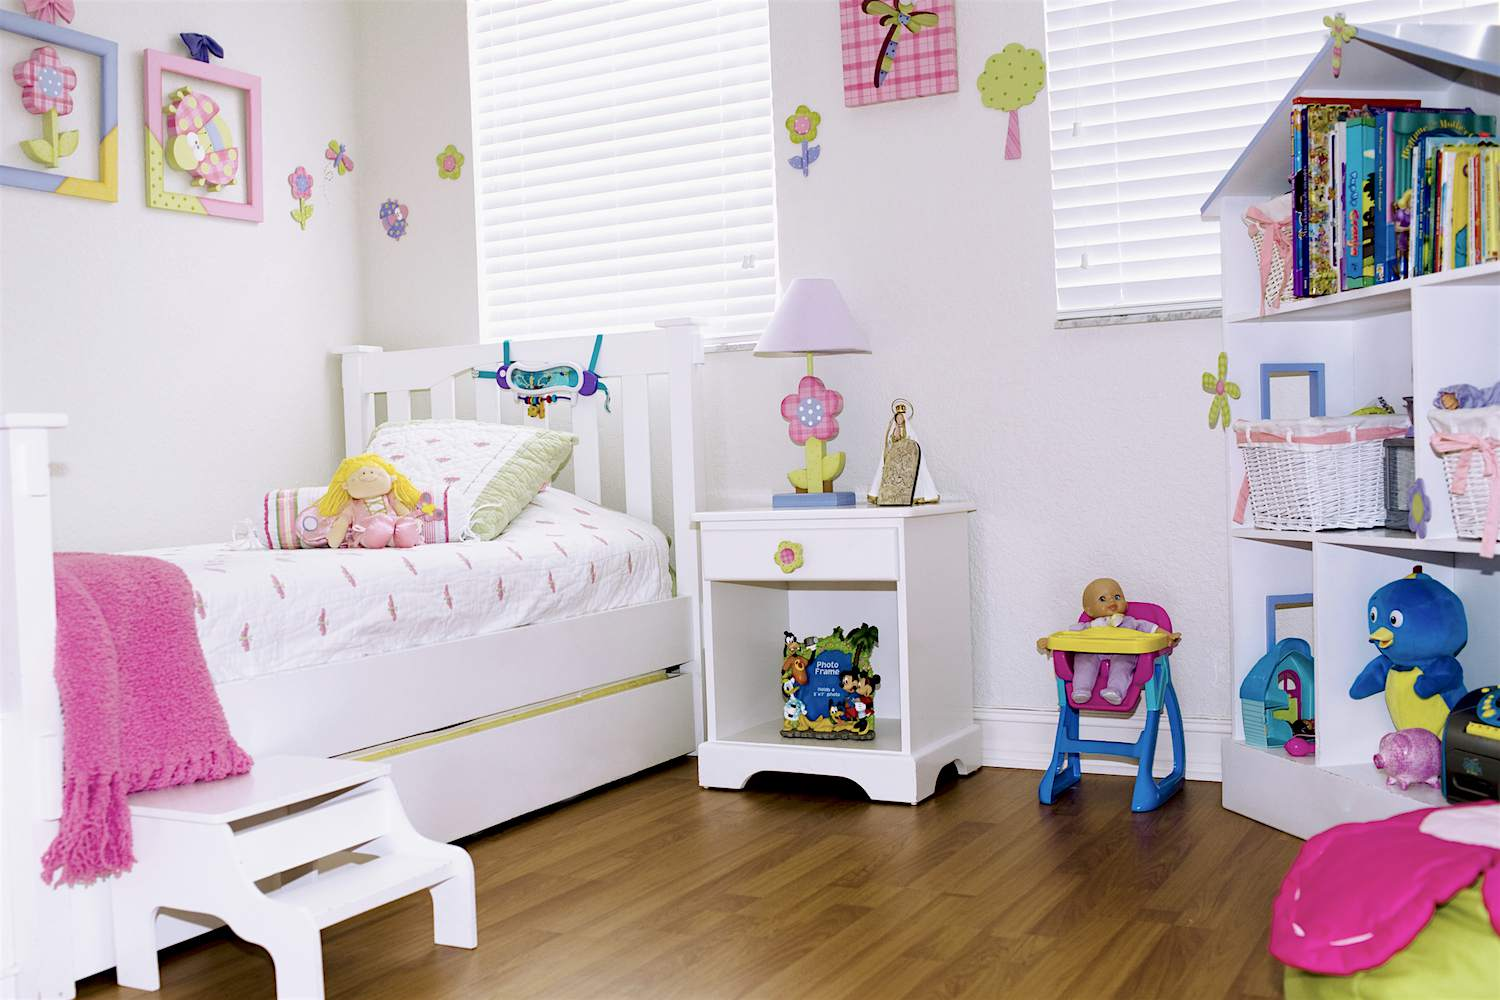 Space saving kids furniture ideas for your staged home